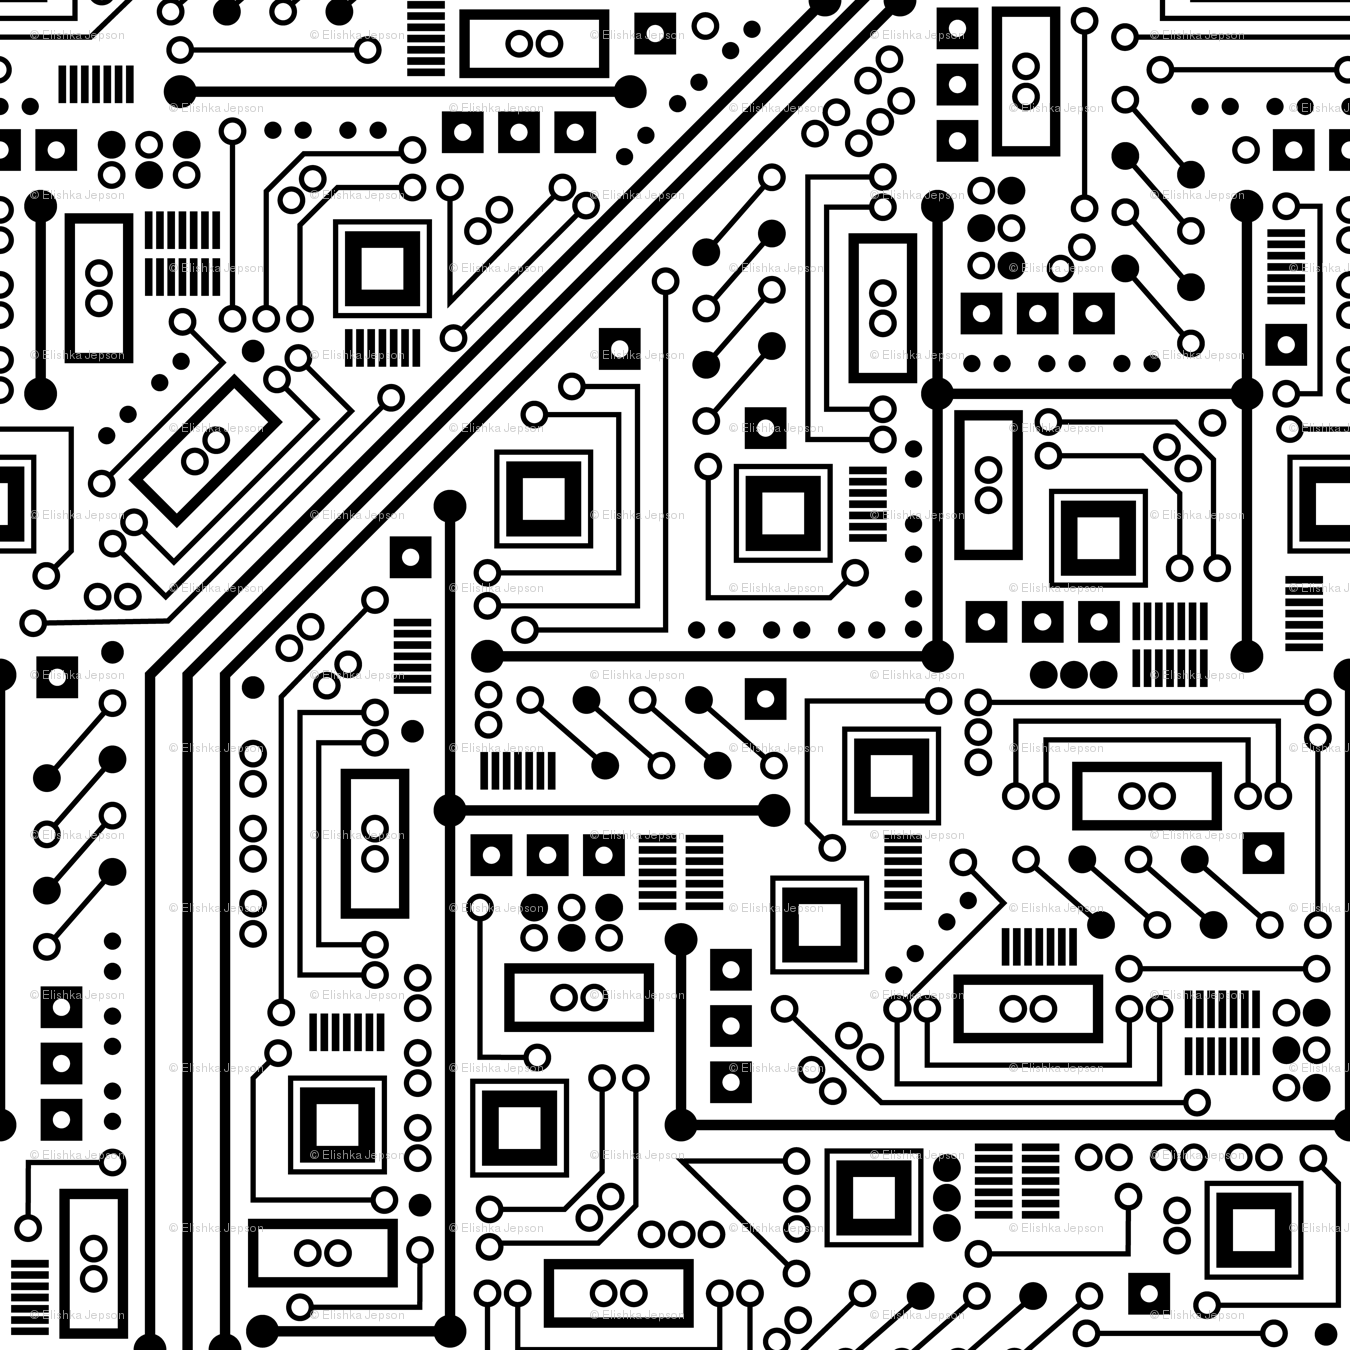 Robot Circuit Board (Black and White) fabric - robyriker - Spoonflower